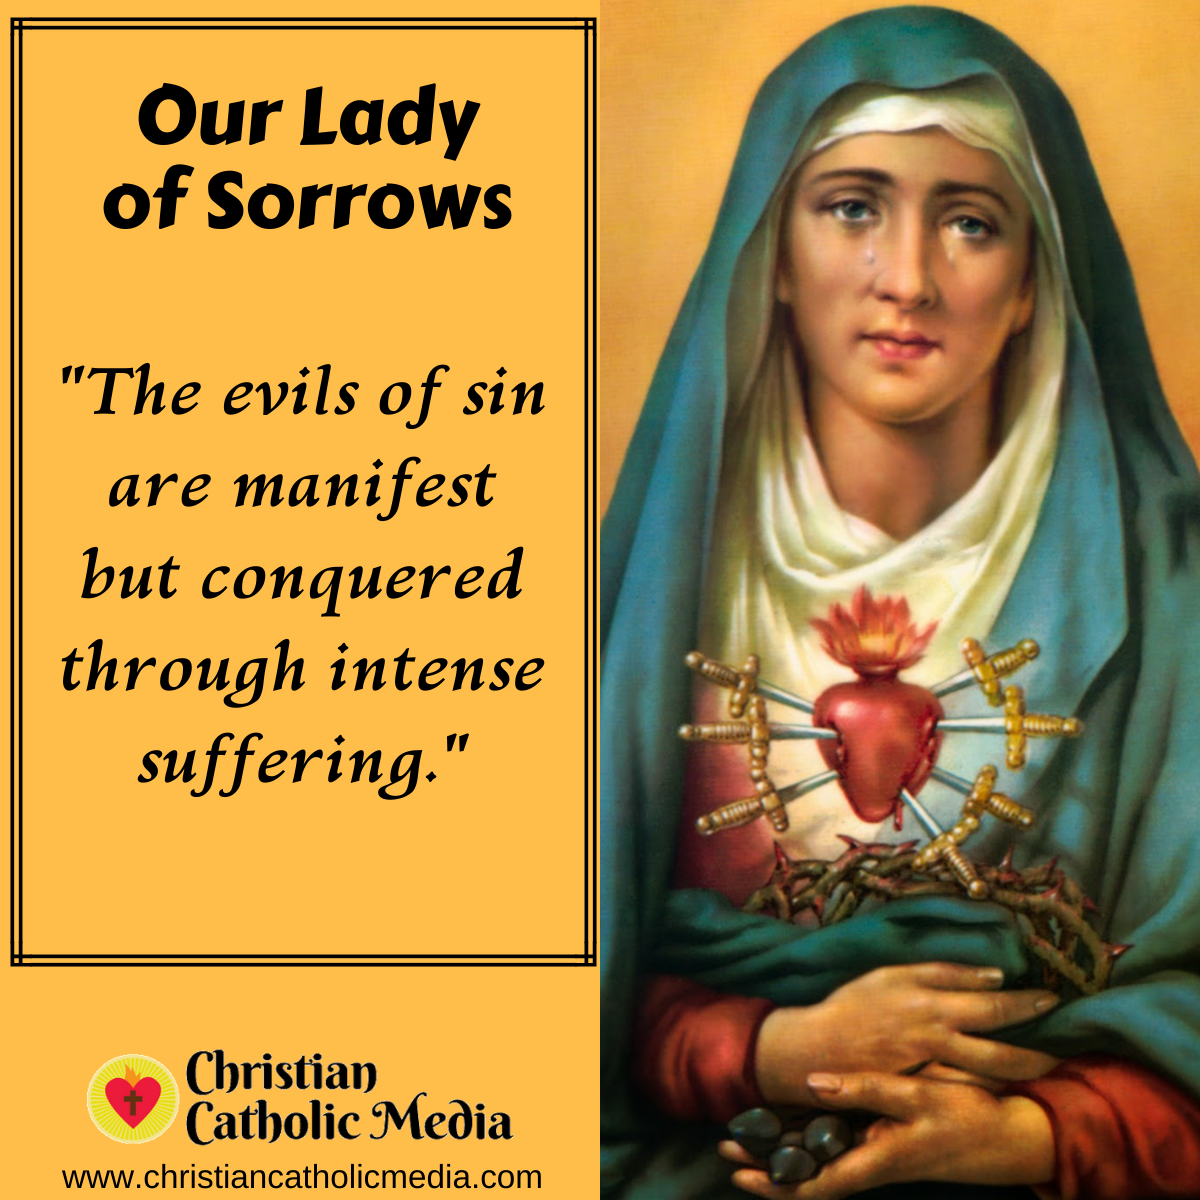 Our Lady of Sorrows - Tuesday September 15, 2020